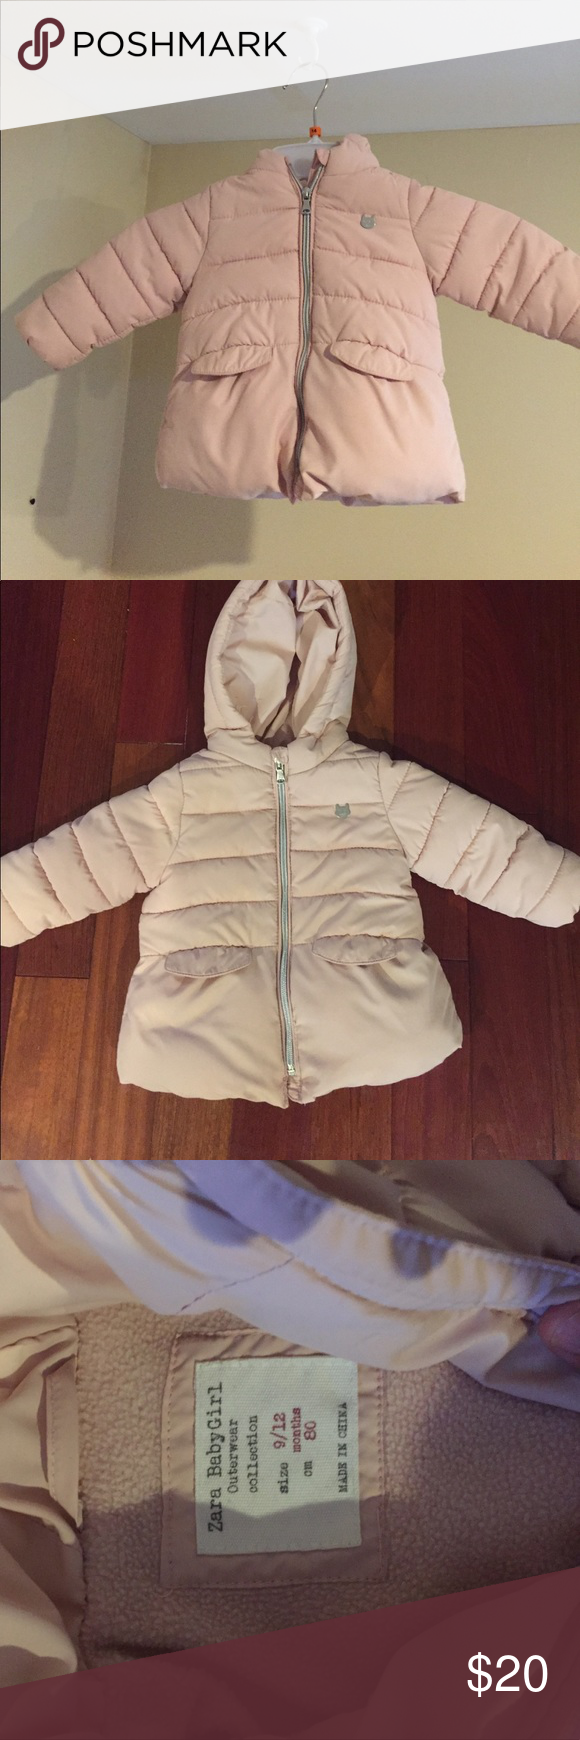 21bcaddb2 Baby Boy Winter Coat 9 12 Months